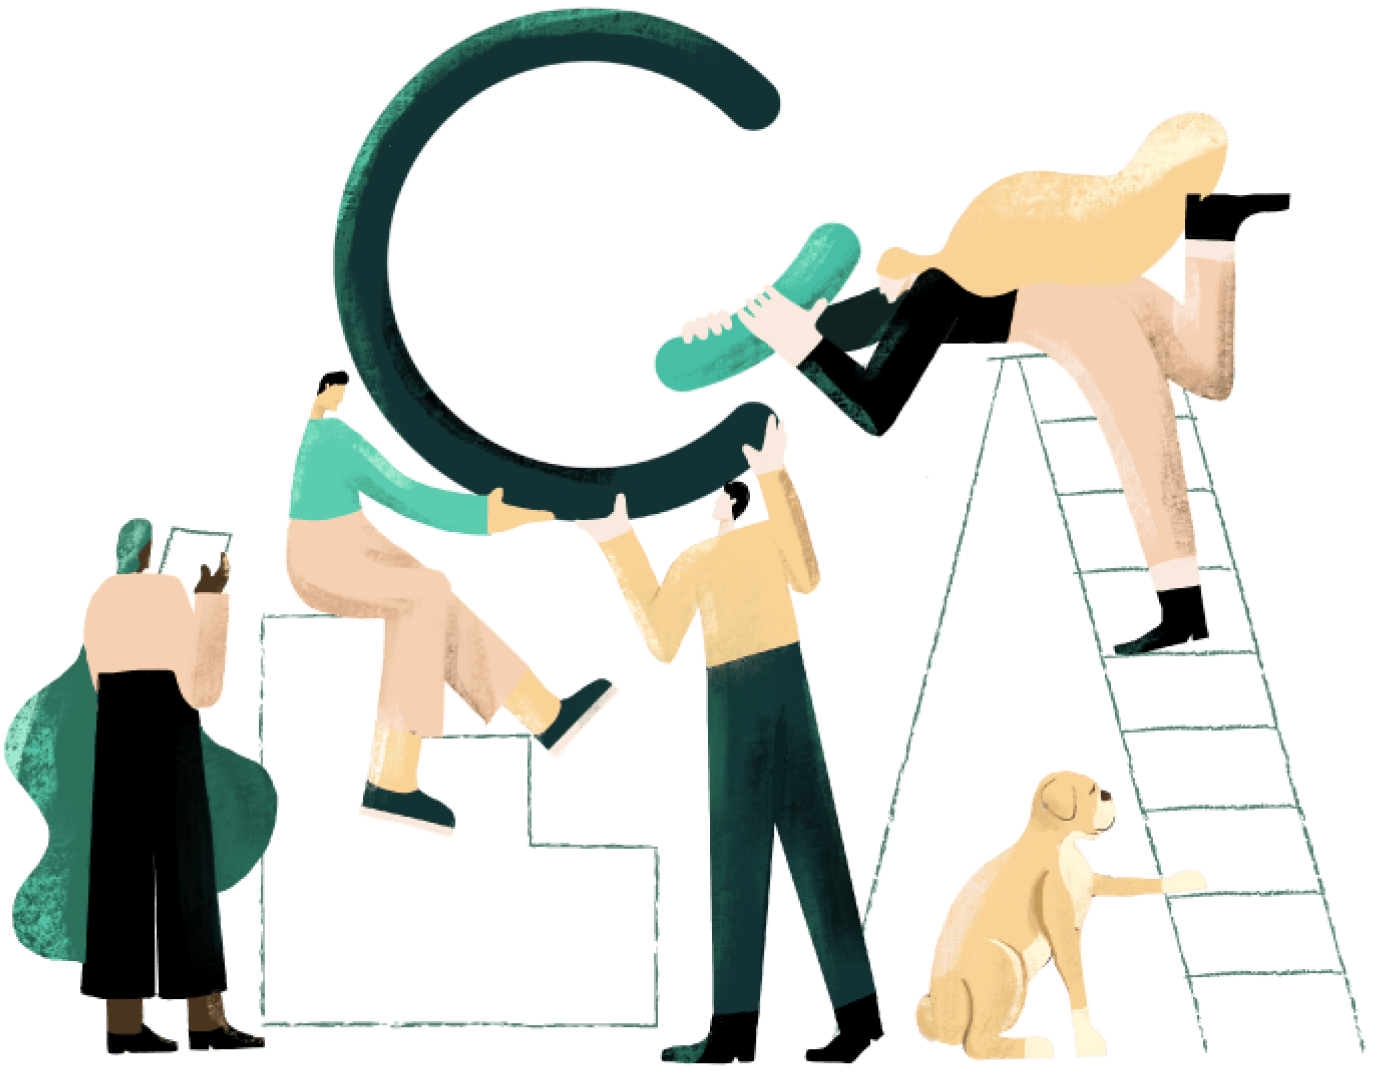 Illustration of multiple people collaborating